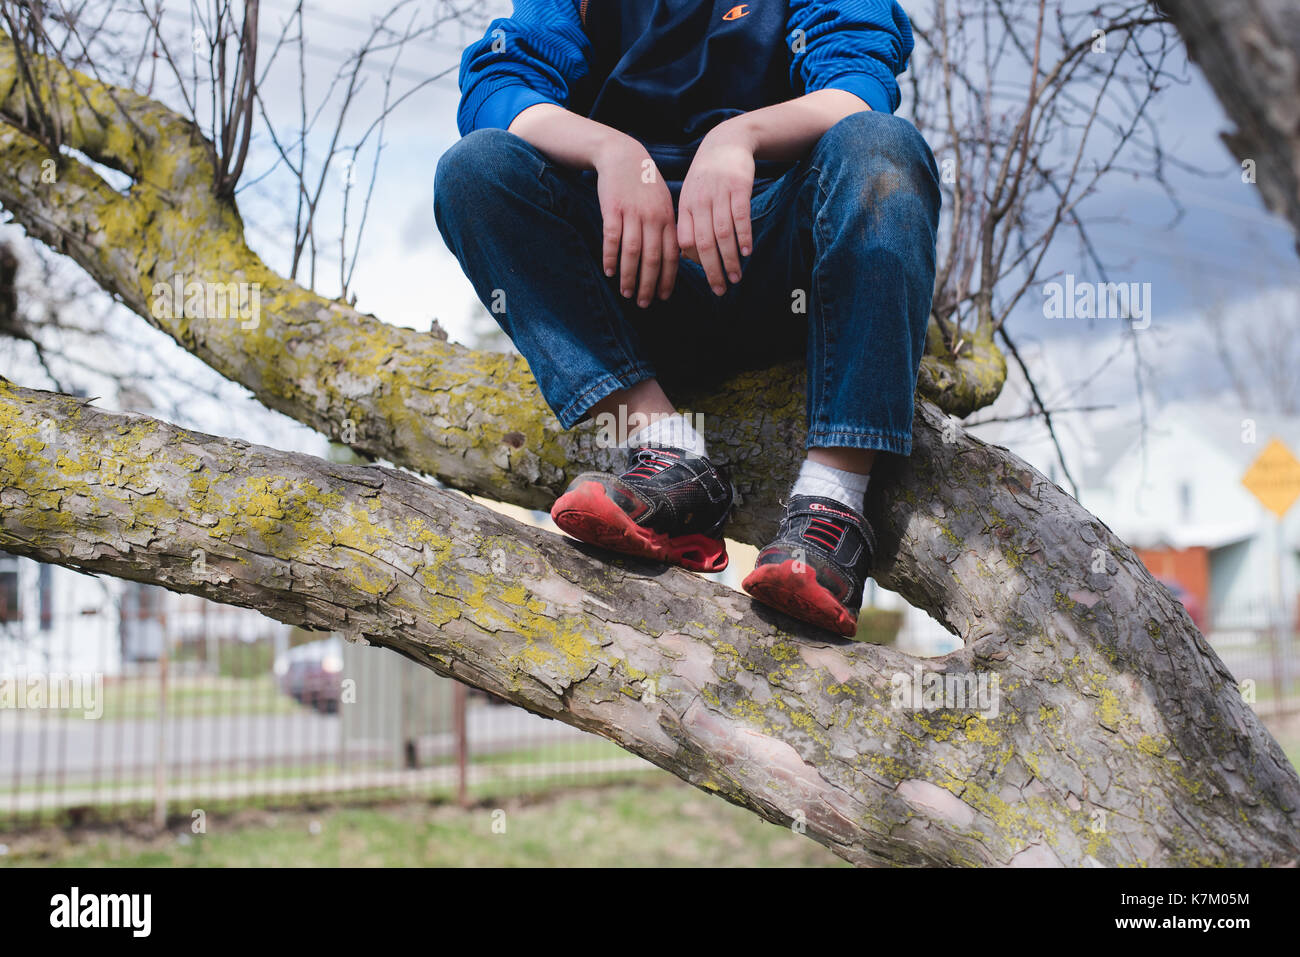 Boy sitting in a tree. - Stock Image